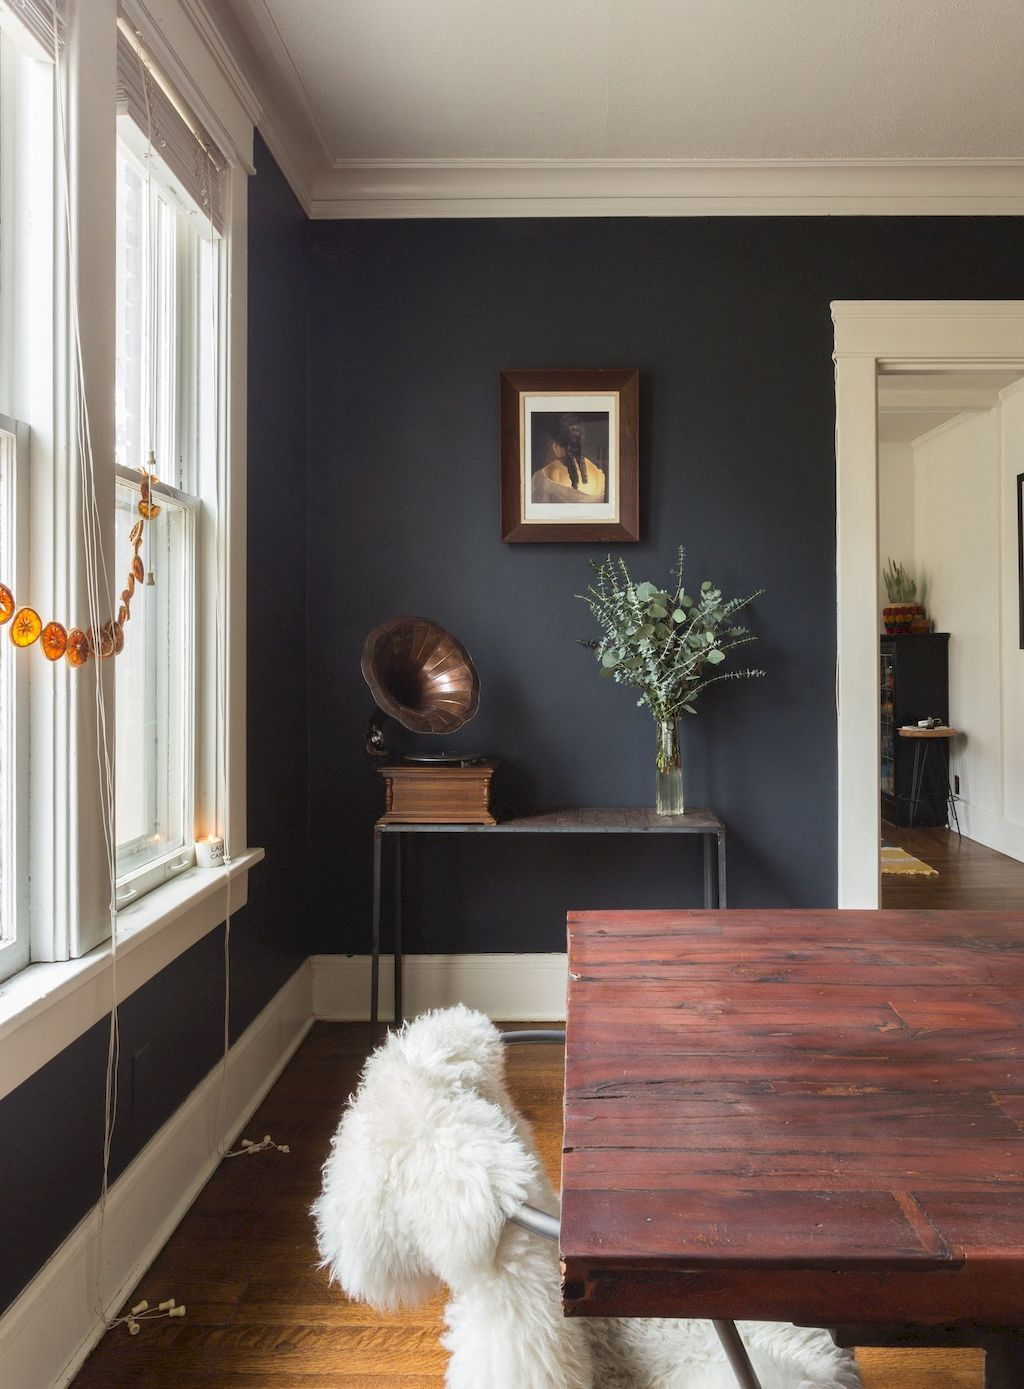 Best Interior Wall Color Ideas for 2019 images